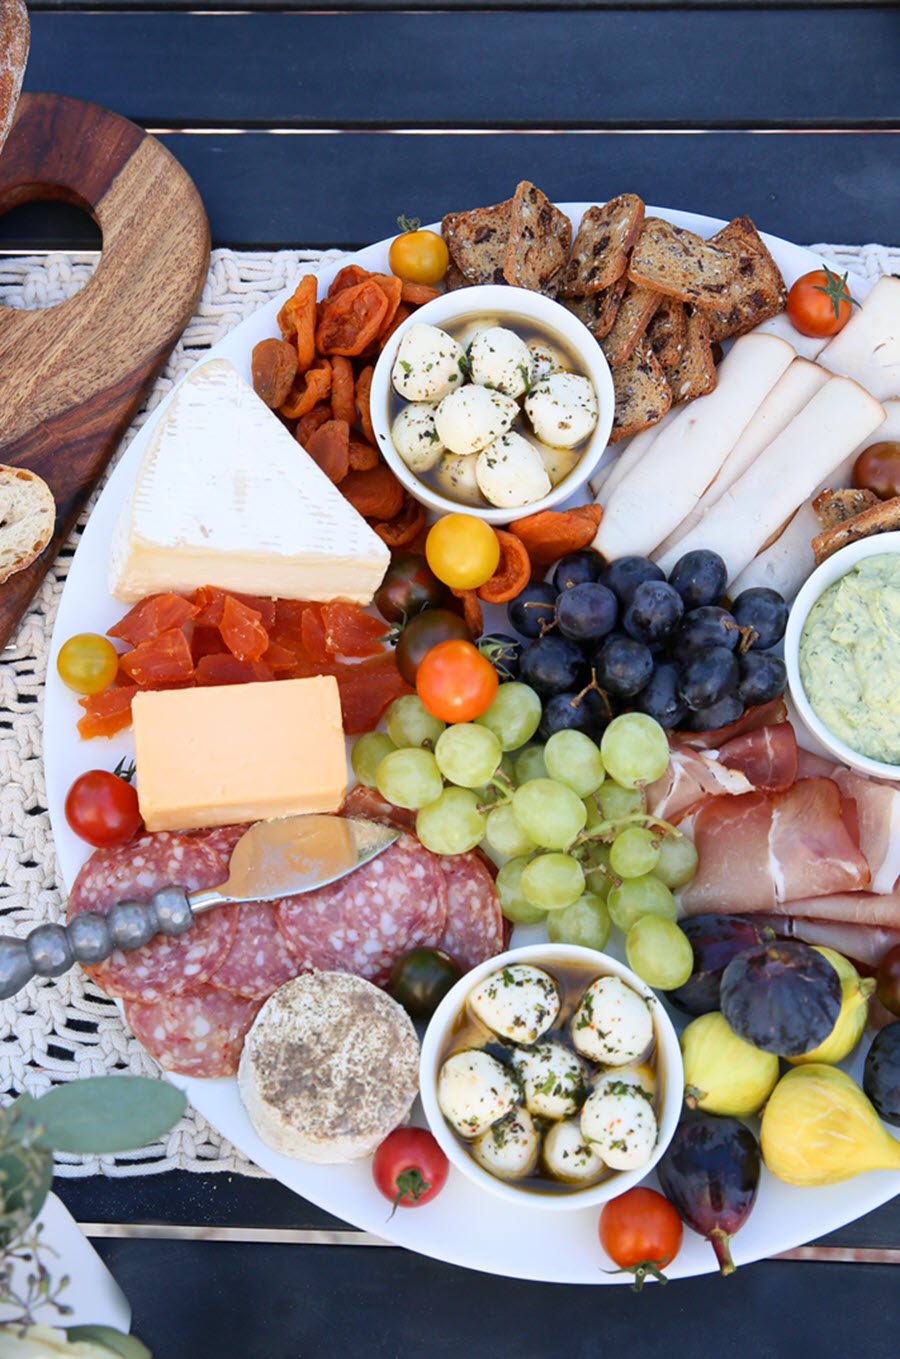 Holiday Christmas Wine Pairings for Every Meal - What wine goes with Appetizers